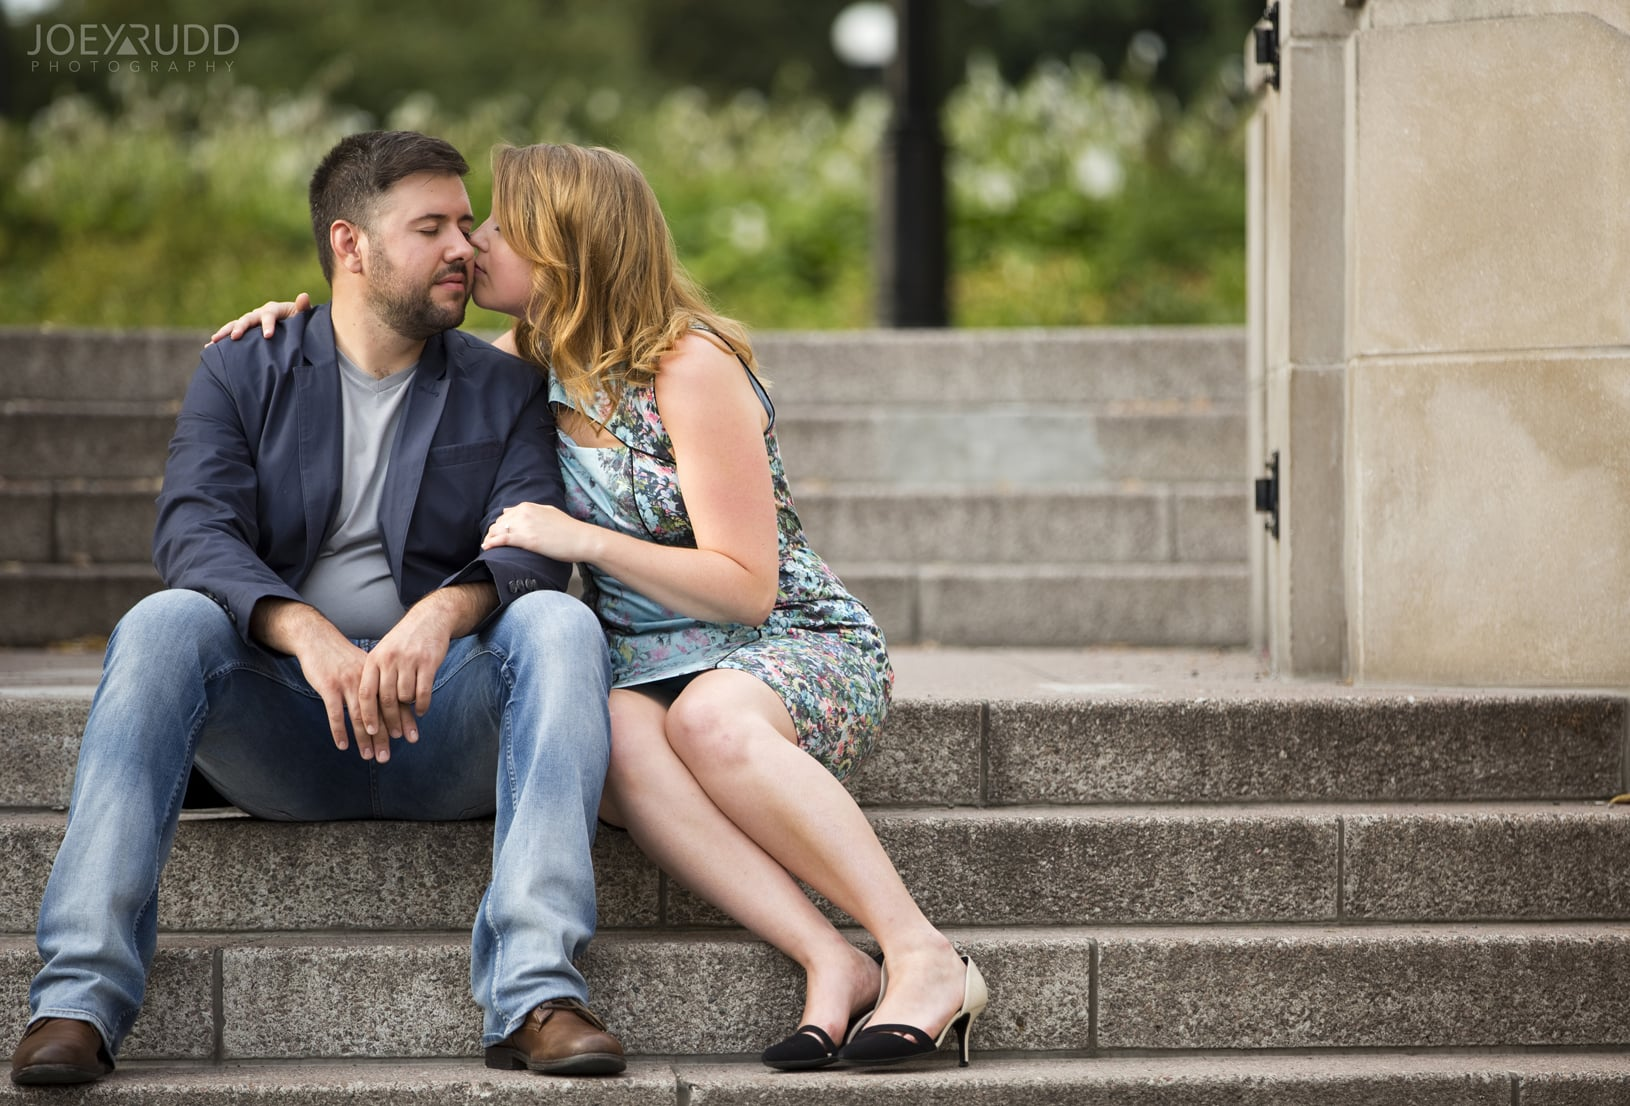 Ottawa Wedding Photographer Joey Rudd Photography Engagement